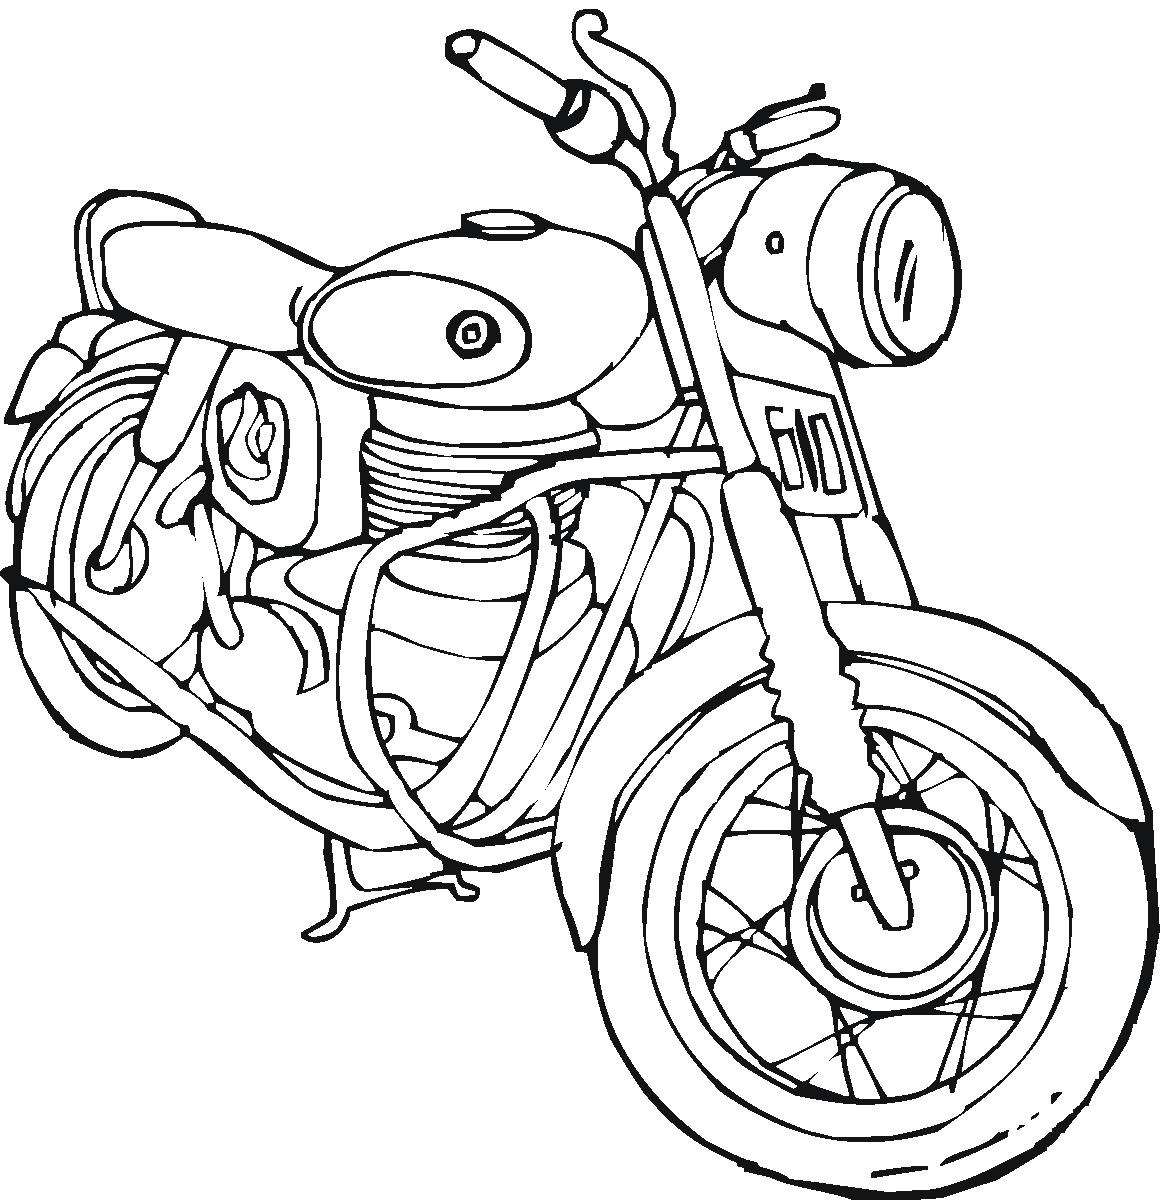 This is a picture of Terrible Scooter Coloring Pages